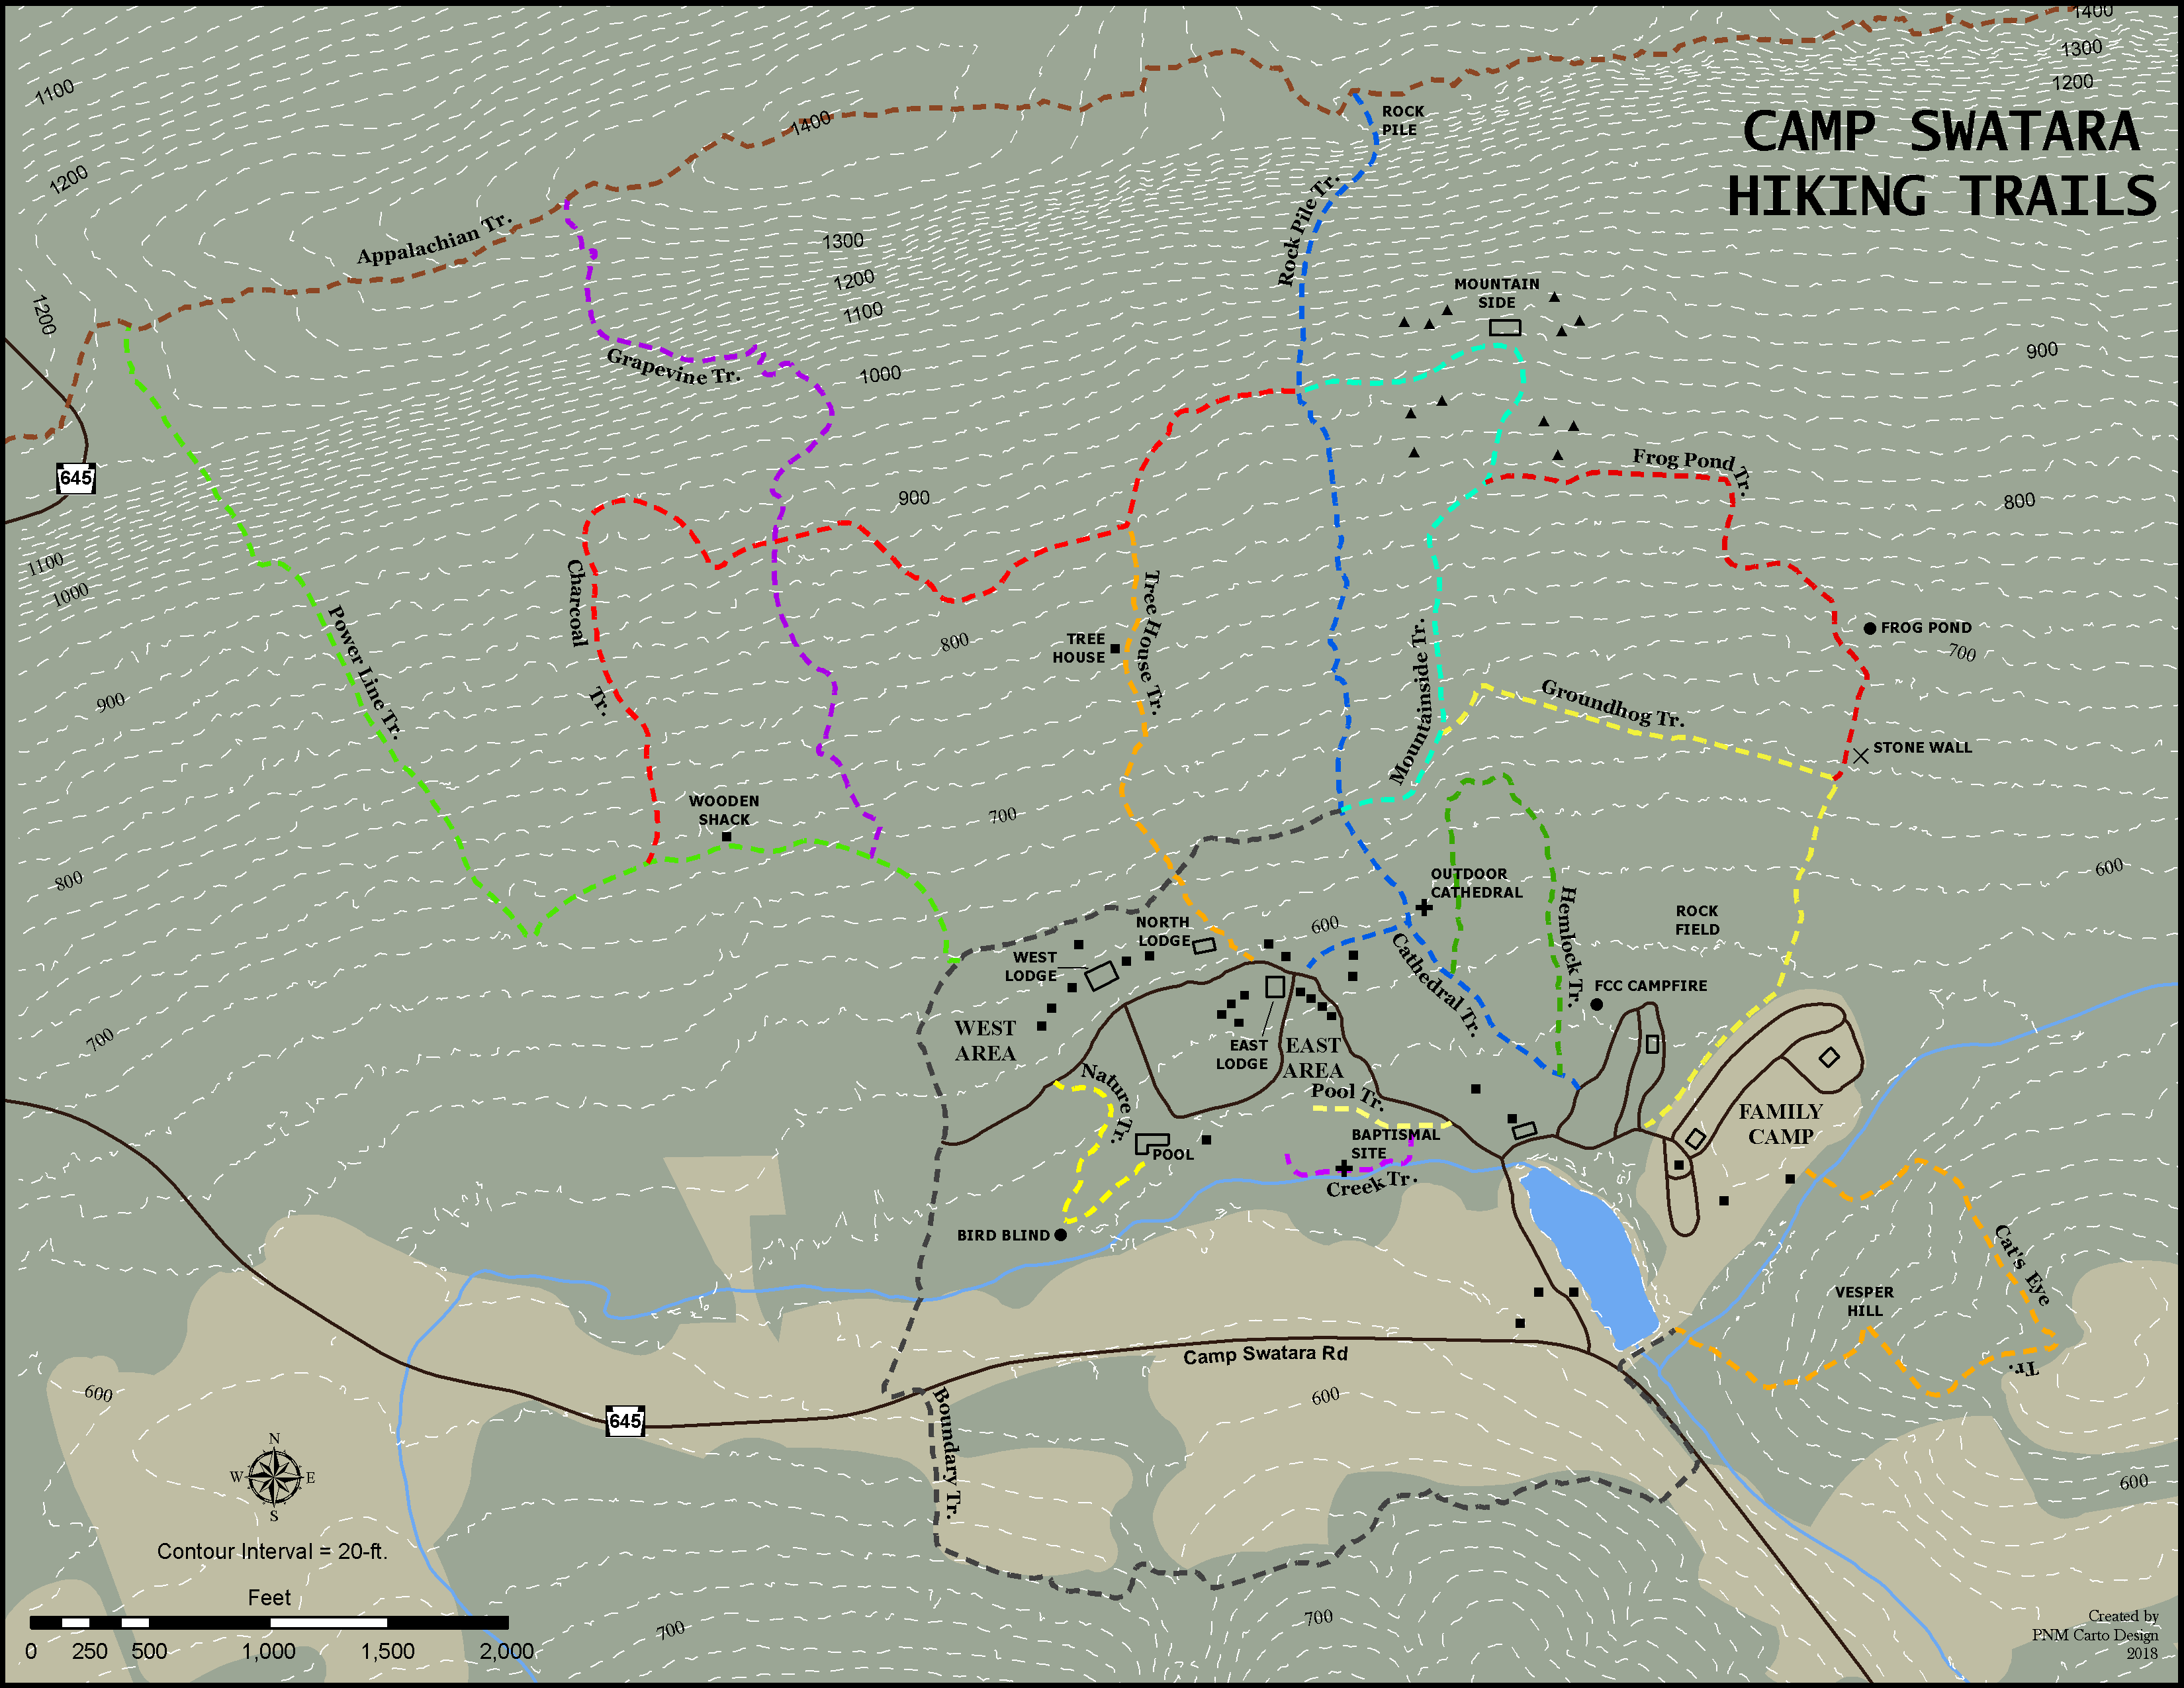 map of the hiking trails at Camp Swatara